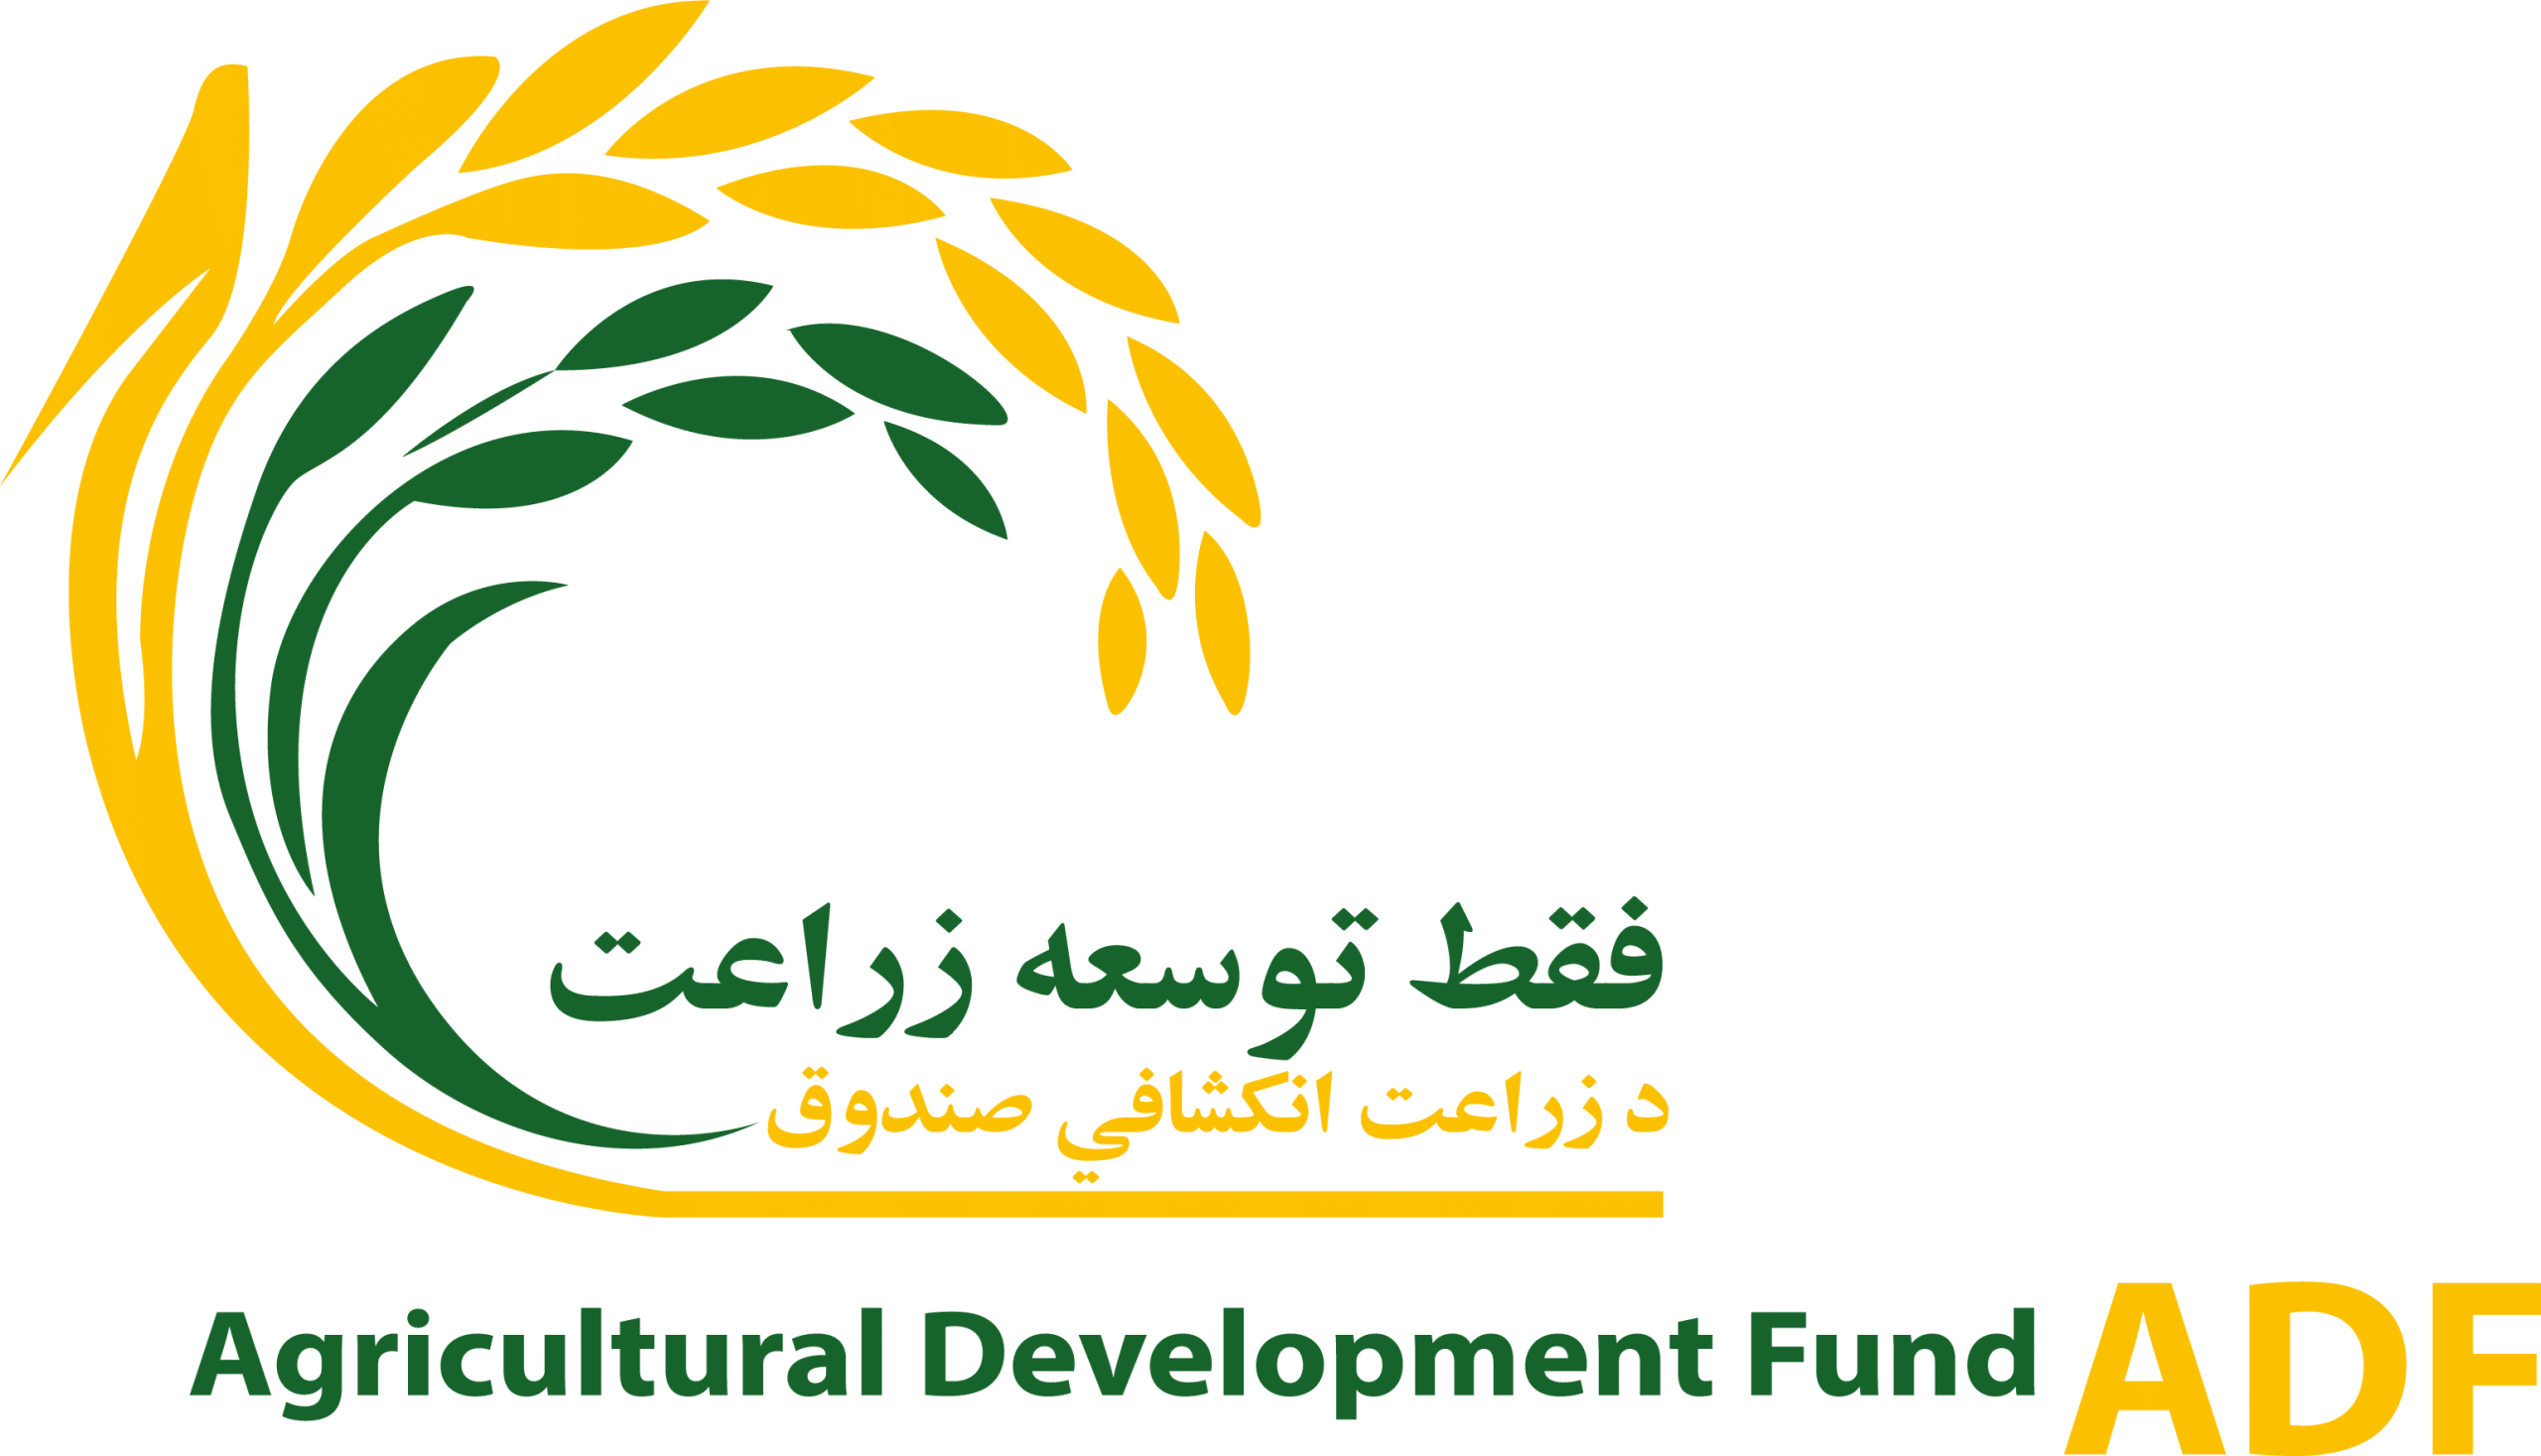 Agriculture Development Fund